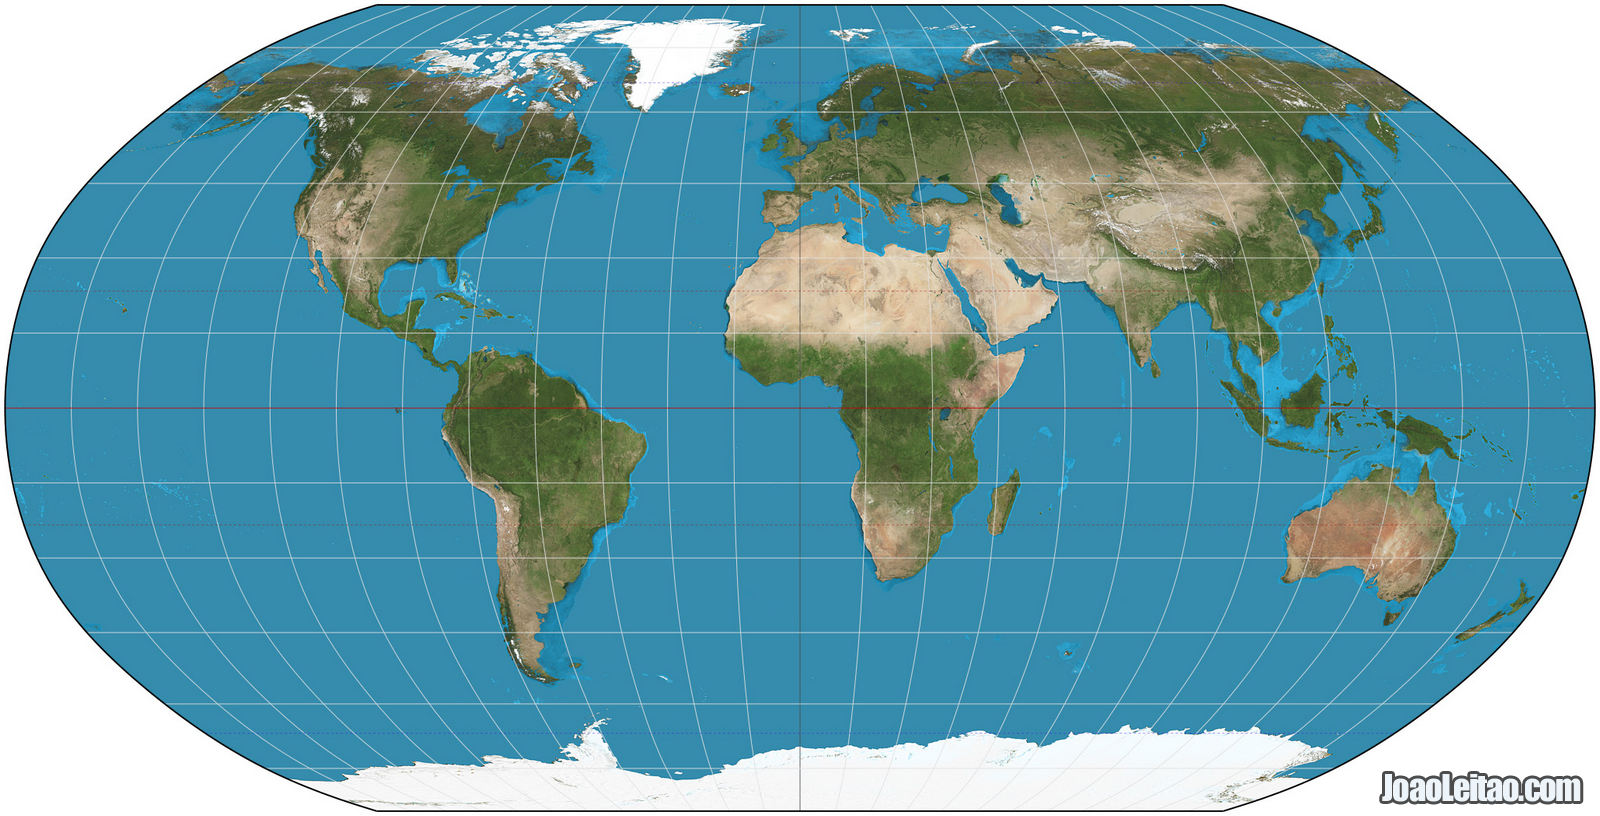 World map with the Robinson projection